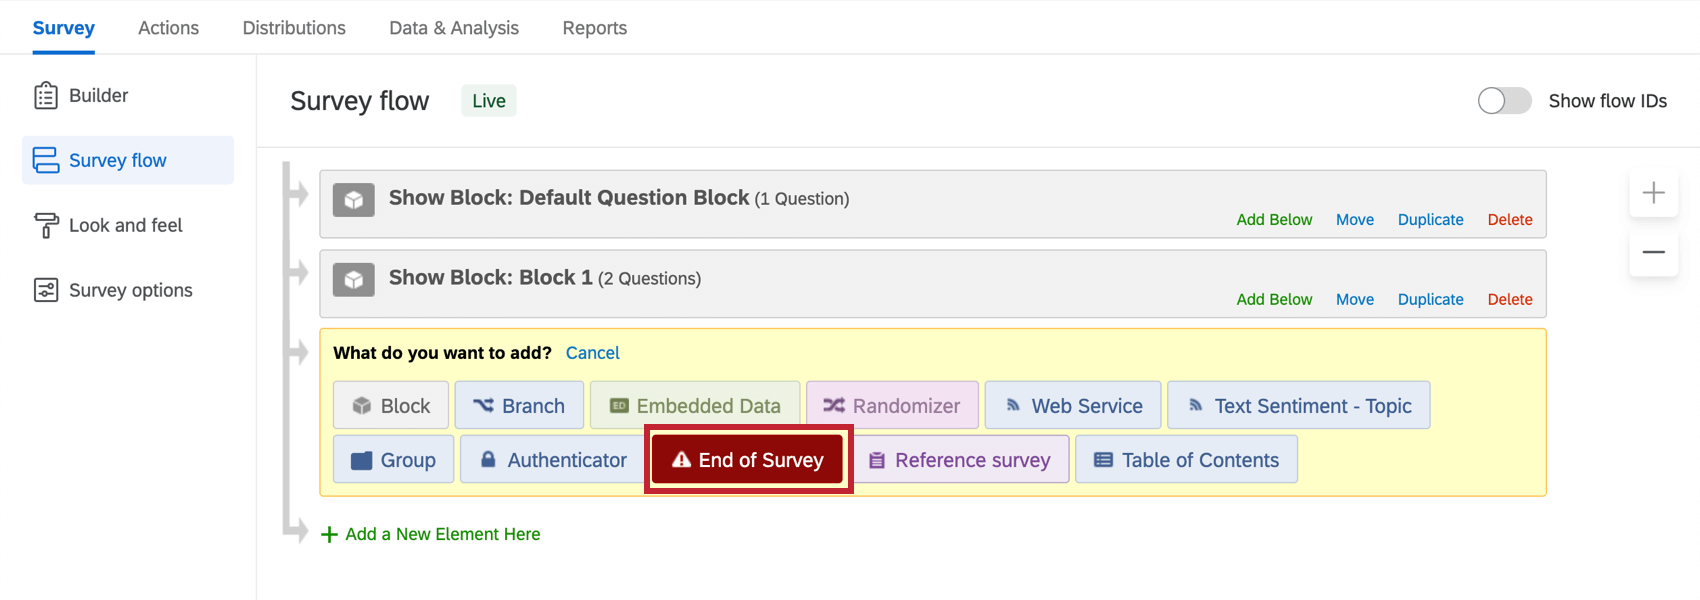 End of Survey button in What do you want to add menu